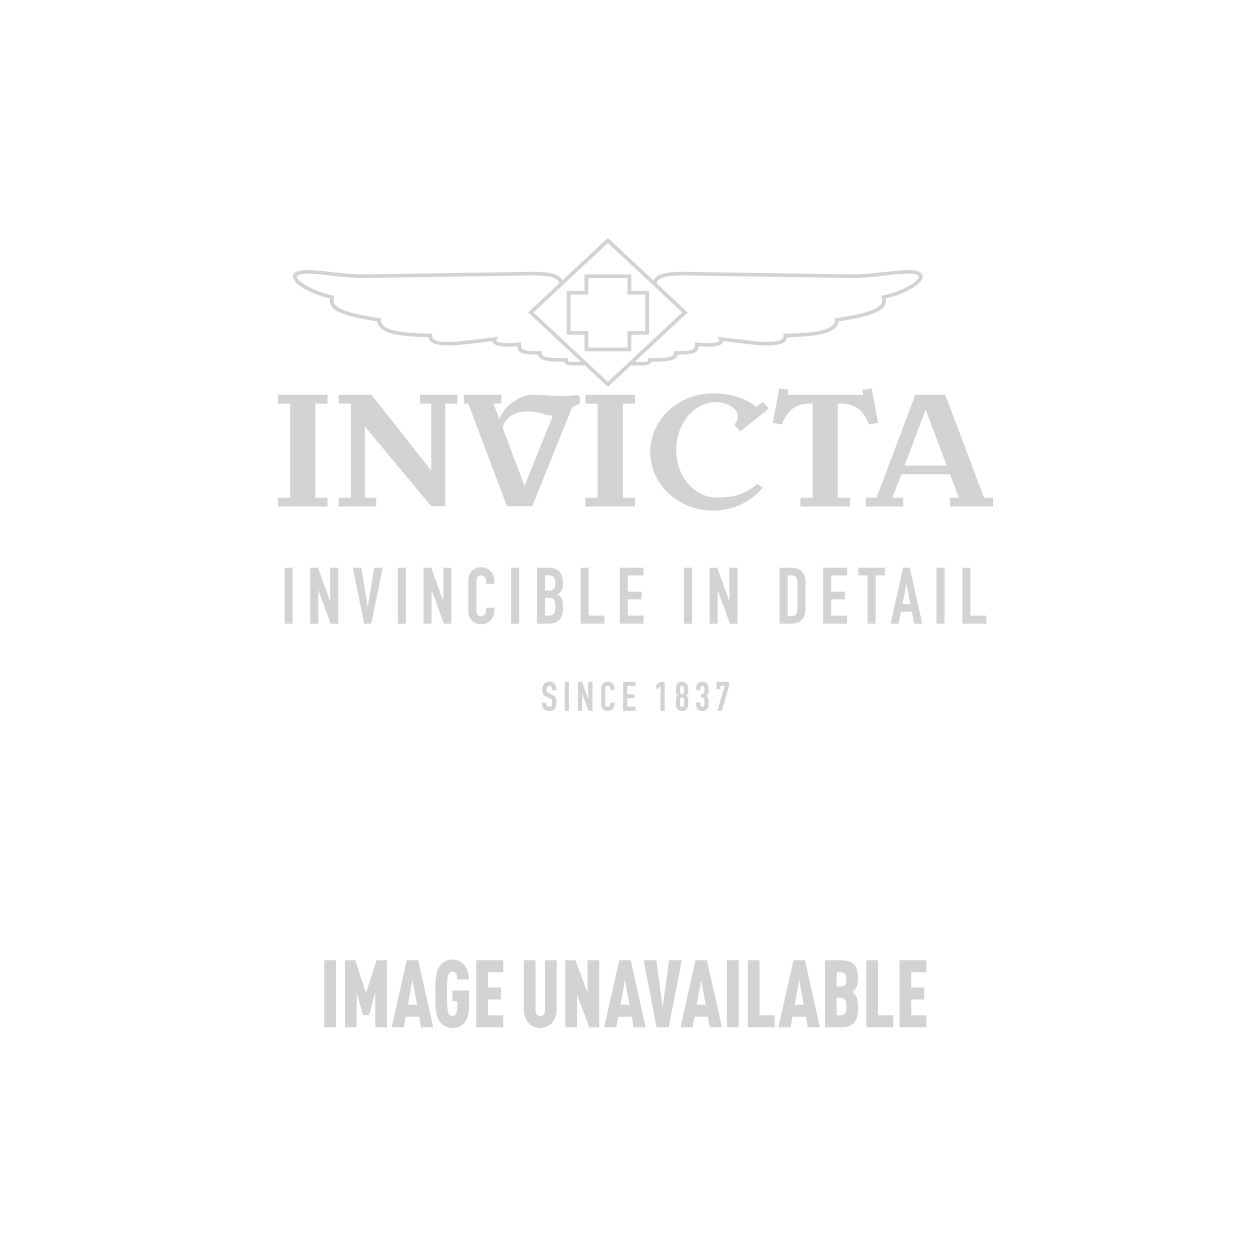 Invicta Specialty Mechanical Watch - Gold case with Grey tone Leather band - Model 17262